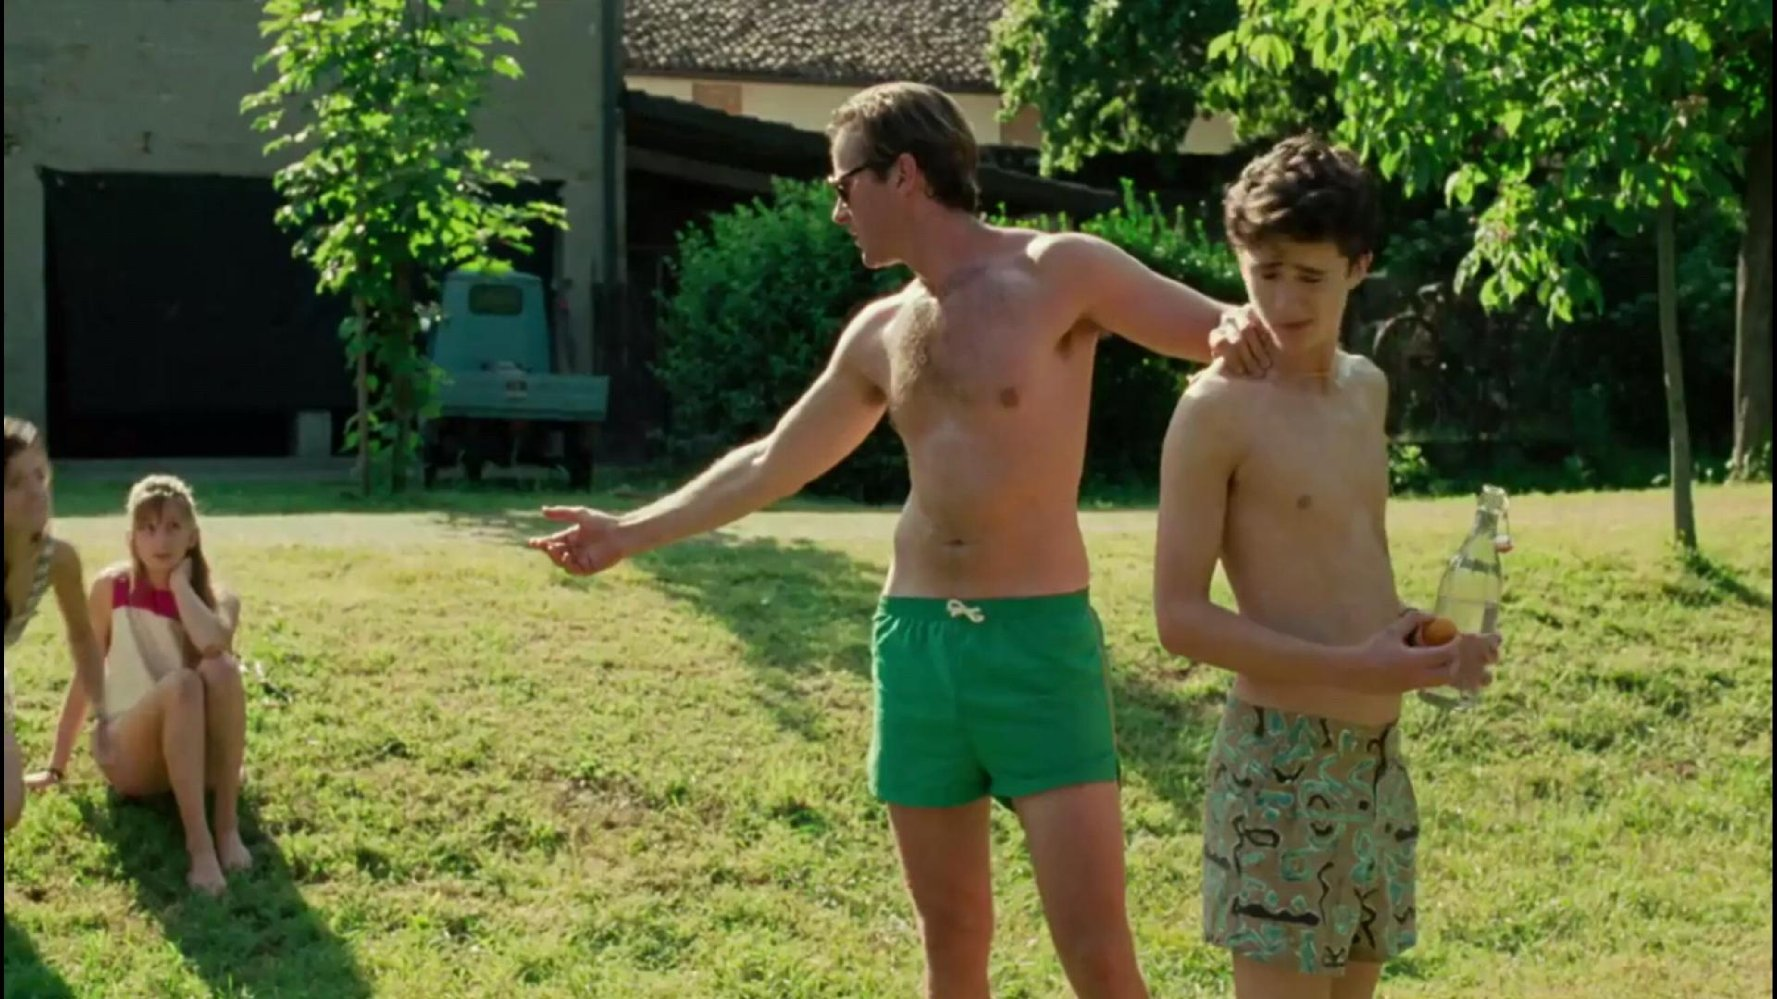 call me by your name lgbtq movies film super gay film